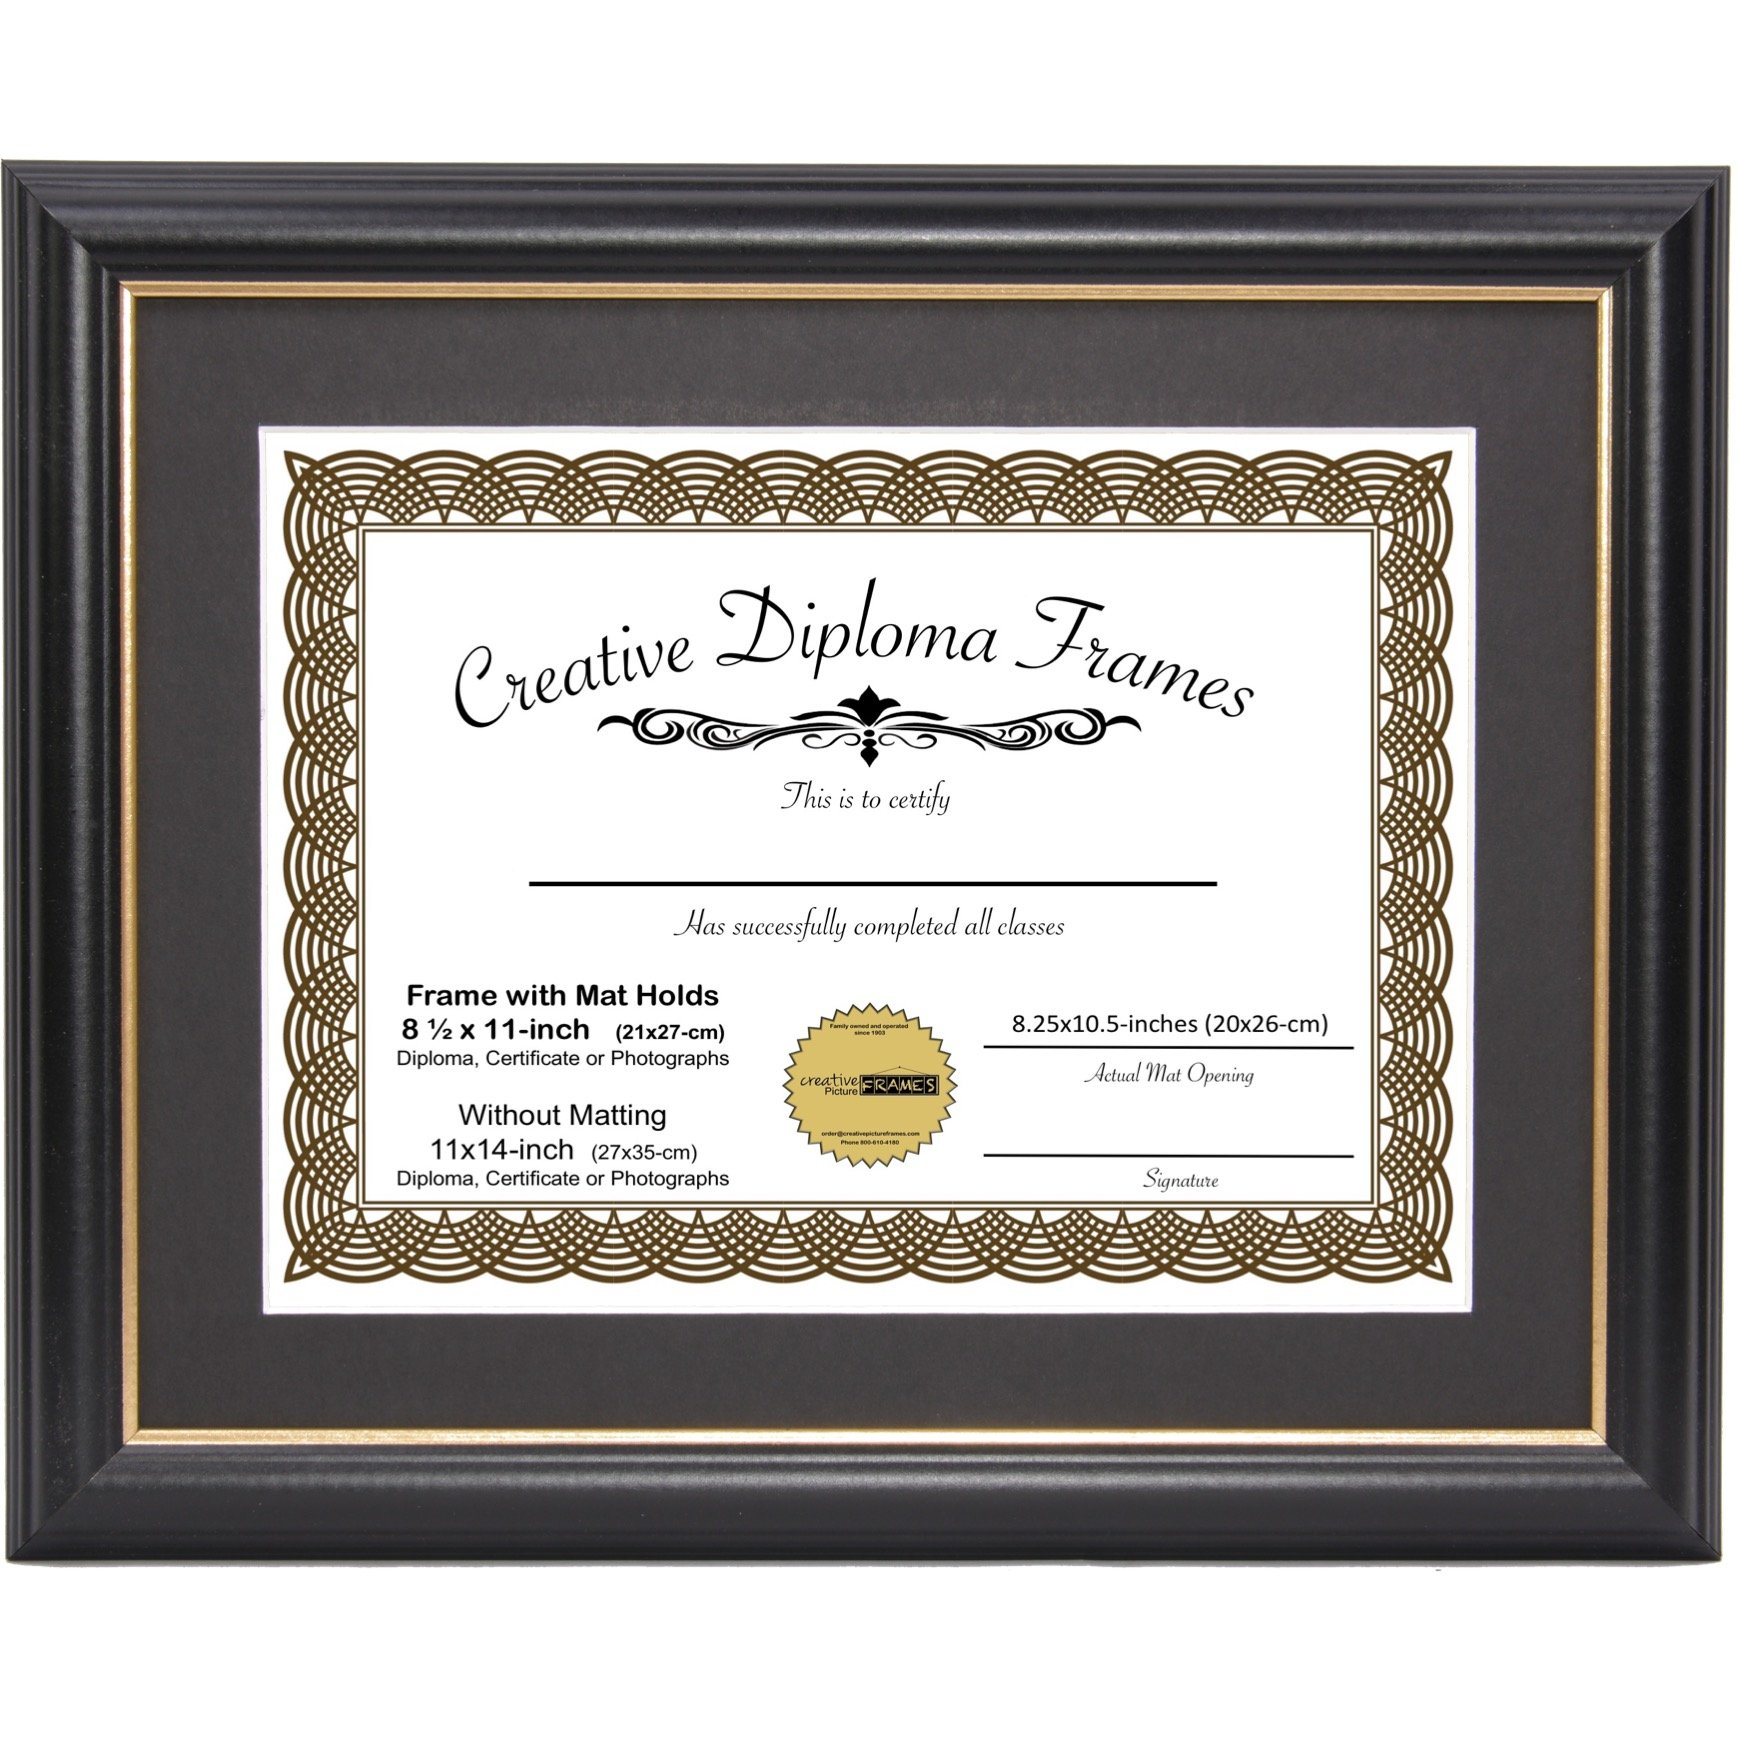 CreativePF [11x14bk.gd] Black Frame with Gold Rim, Black Matting Holds 8.5 by 11-inch Diploma with Easel and Installed Hangers by Creative Picture Frames